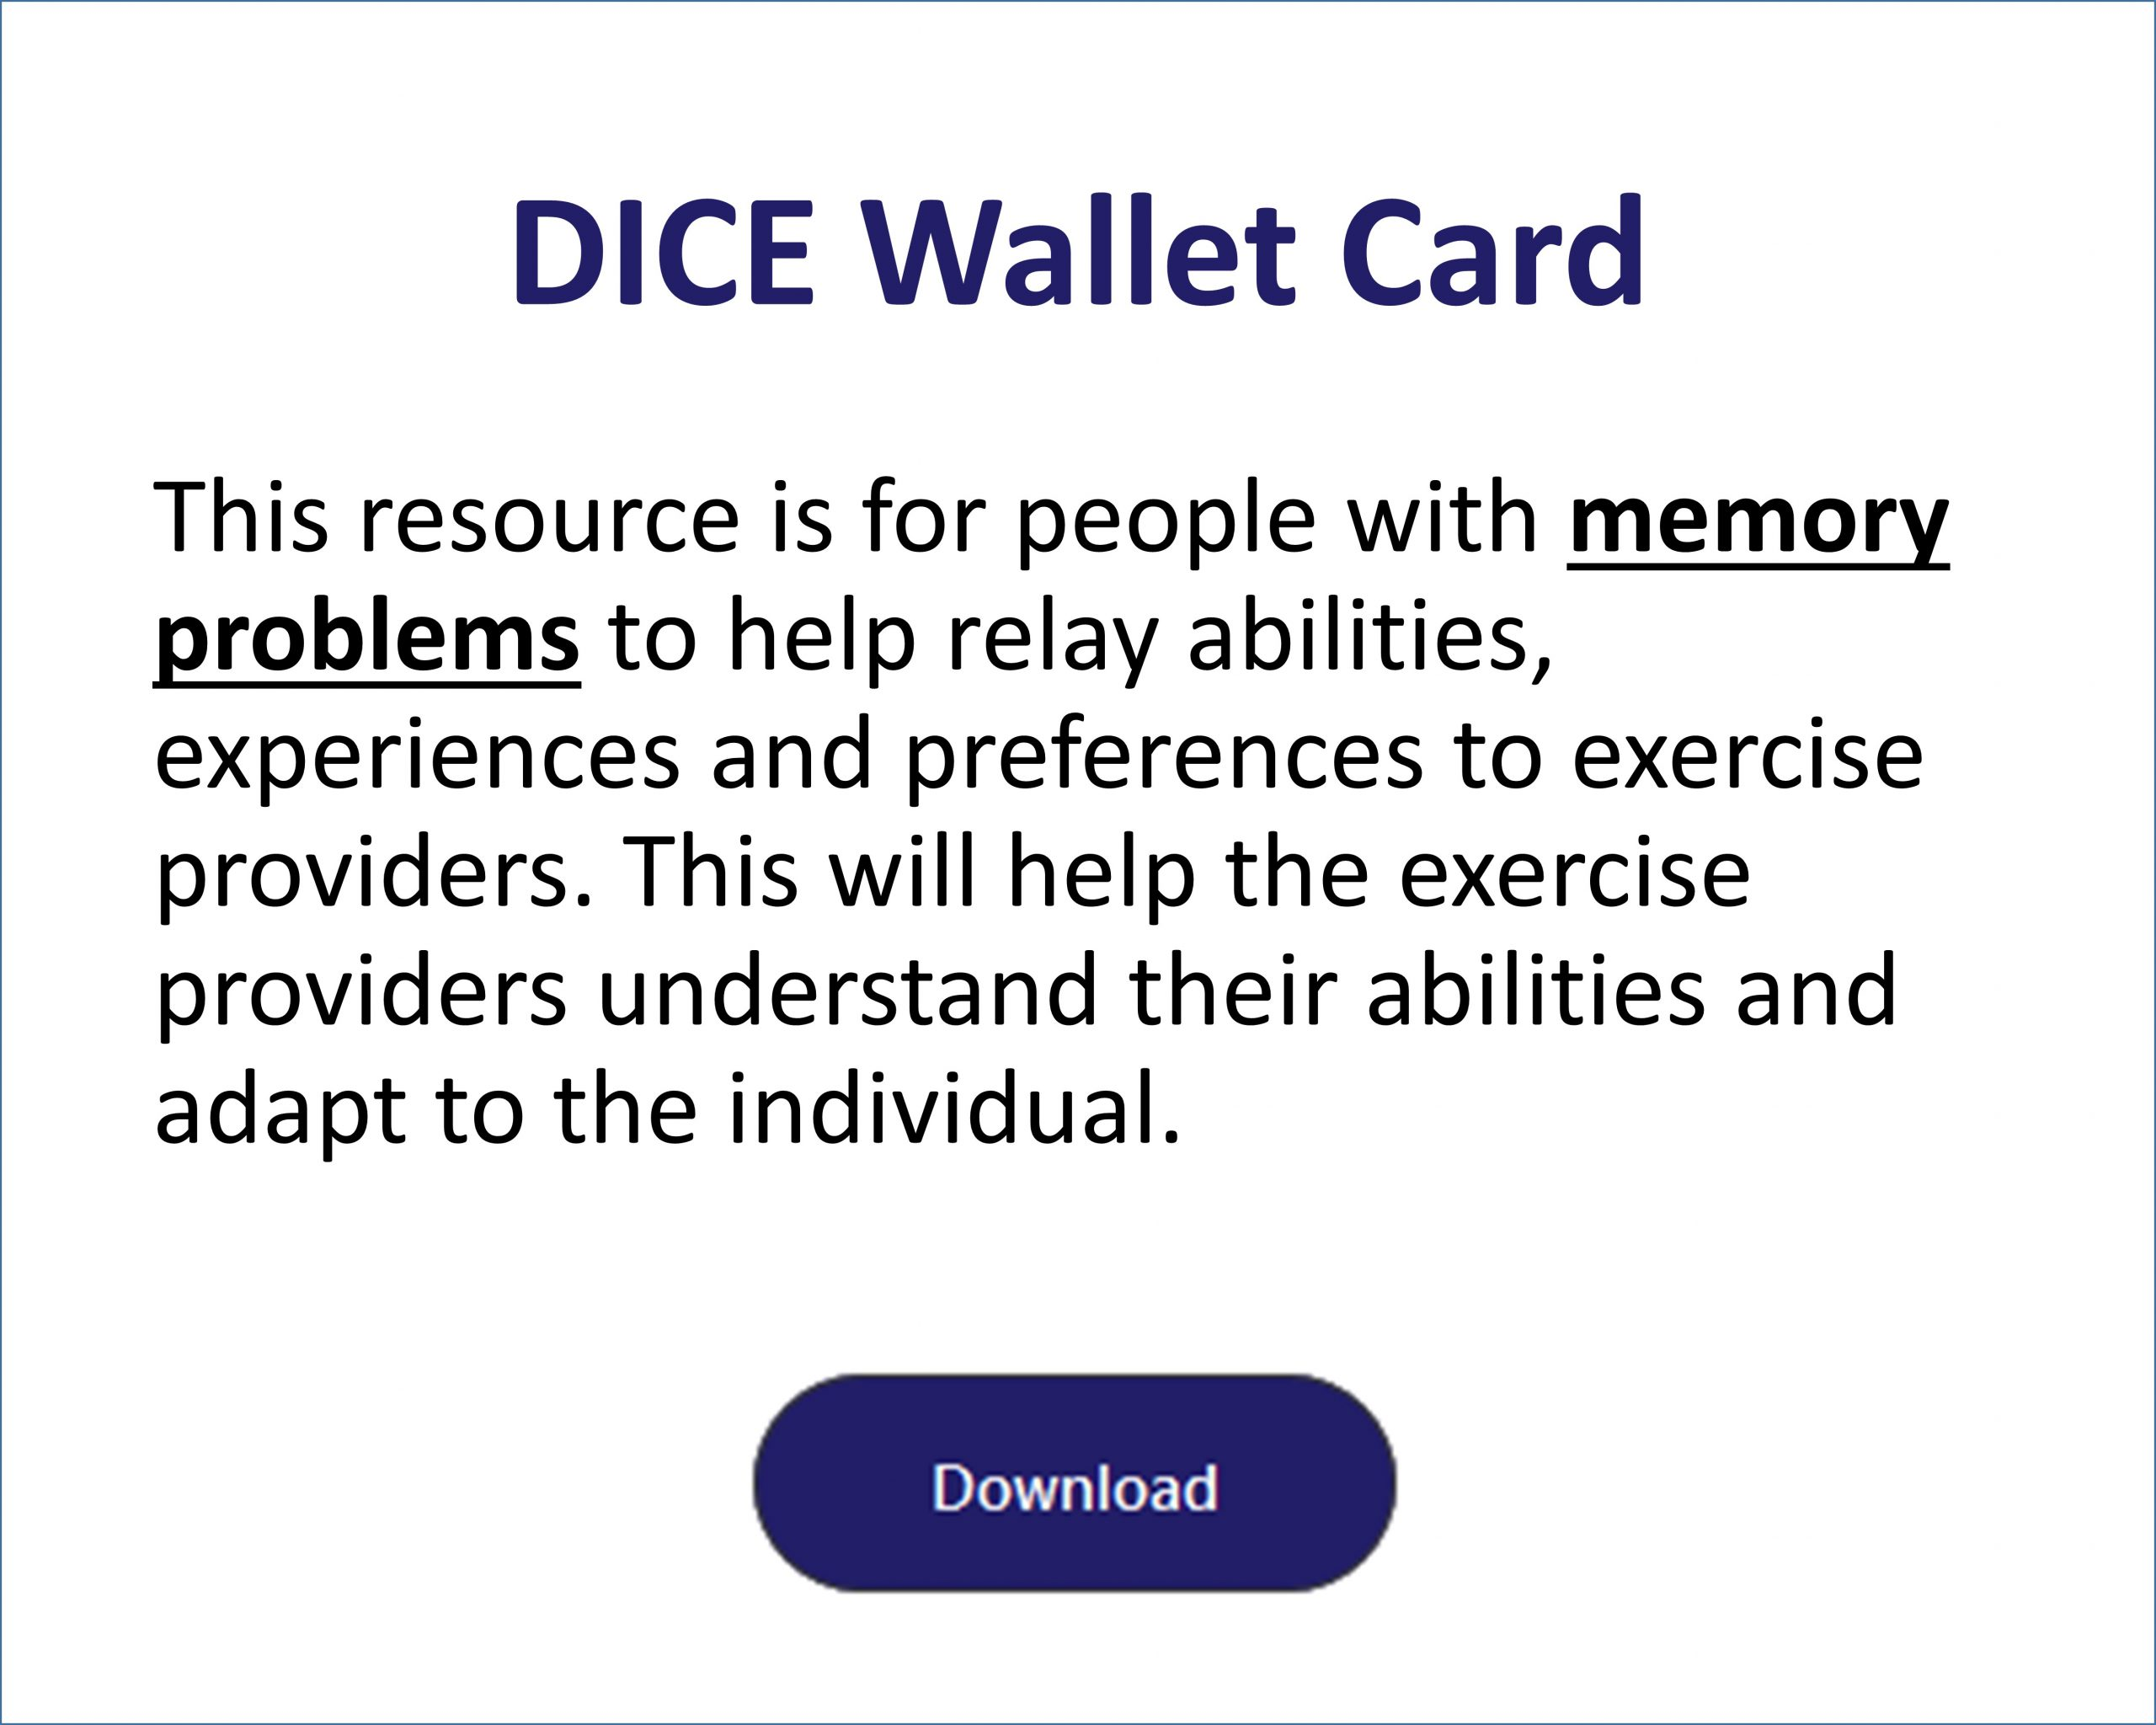 DICE Wallet Card for Memory Problems